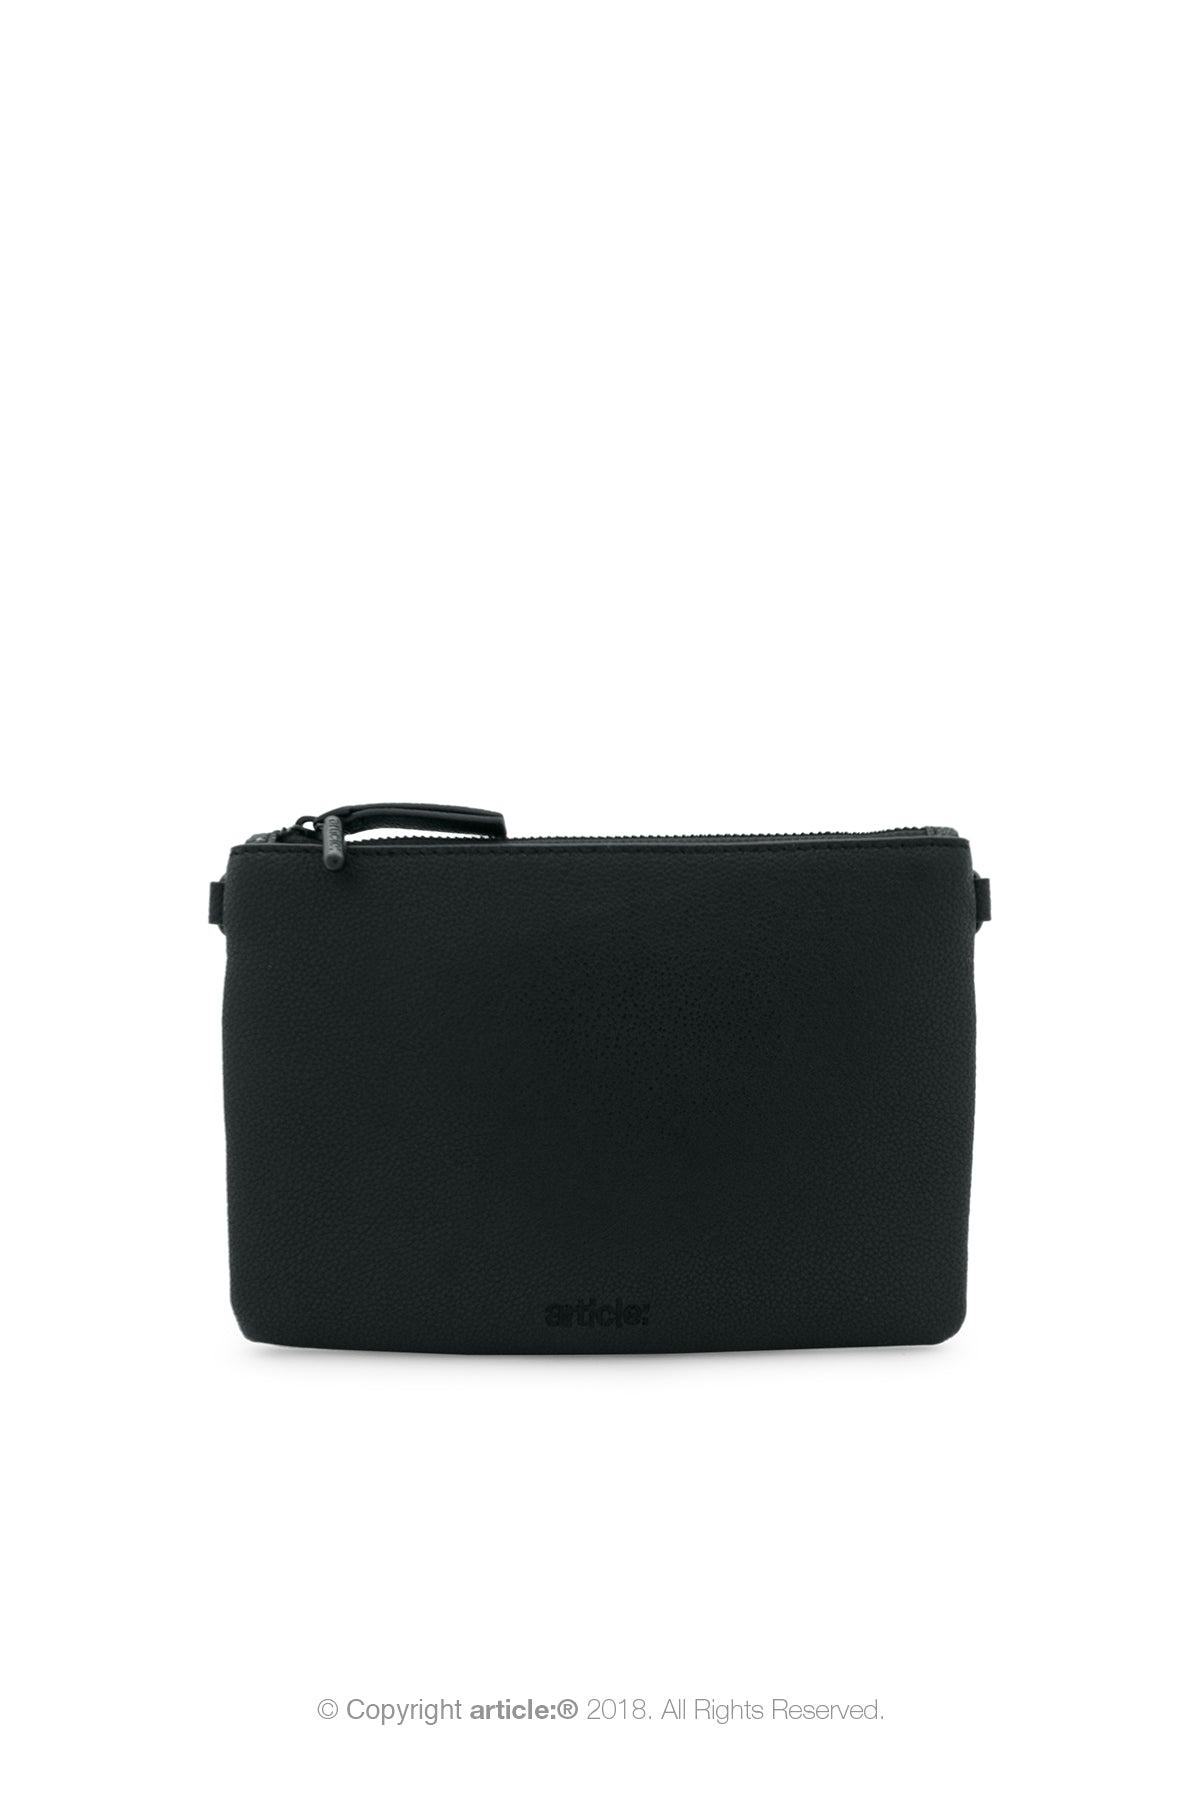 article: #001 Pochette Flat Men - Noir